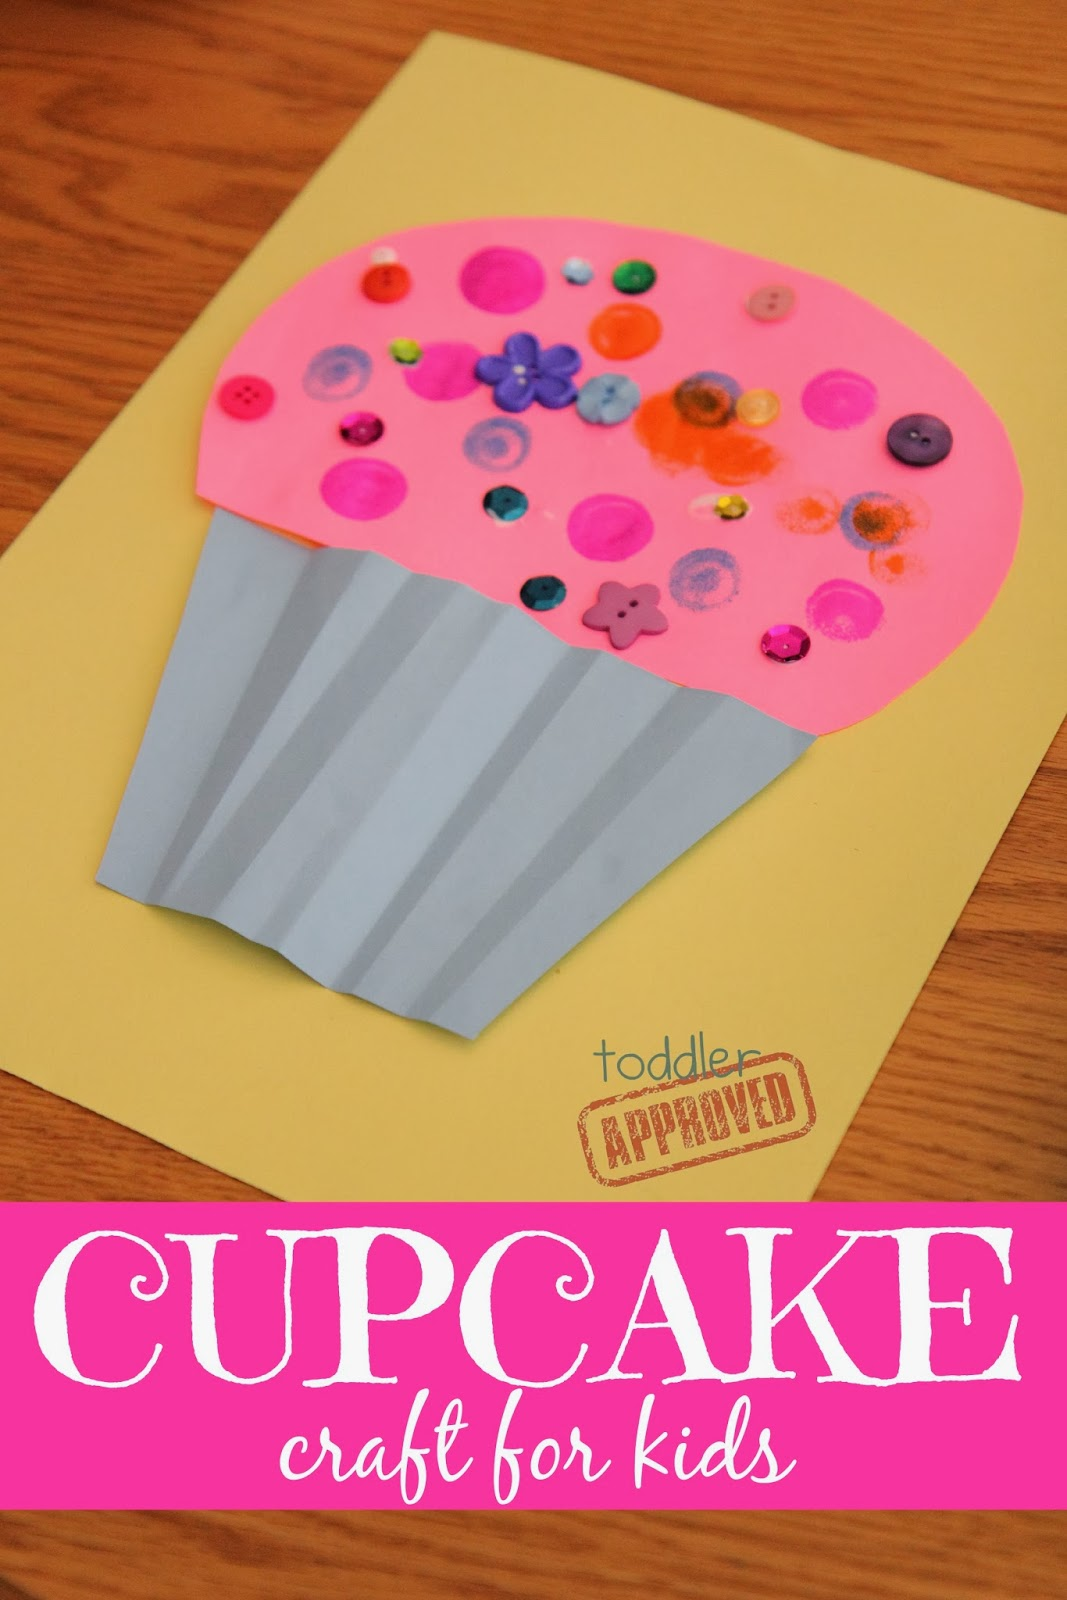 Toddler approved cupcake craft for kids laura numeroff for Art and craft books for kids